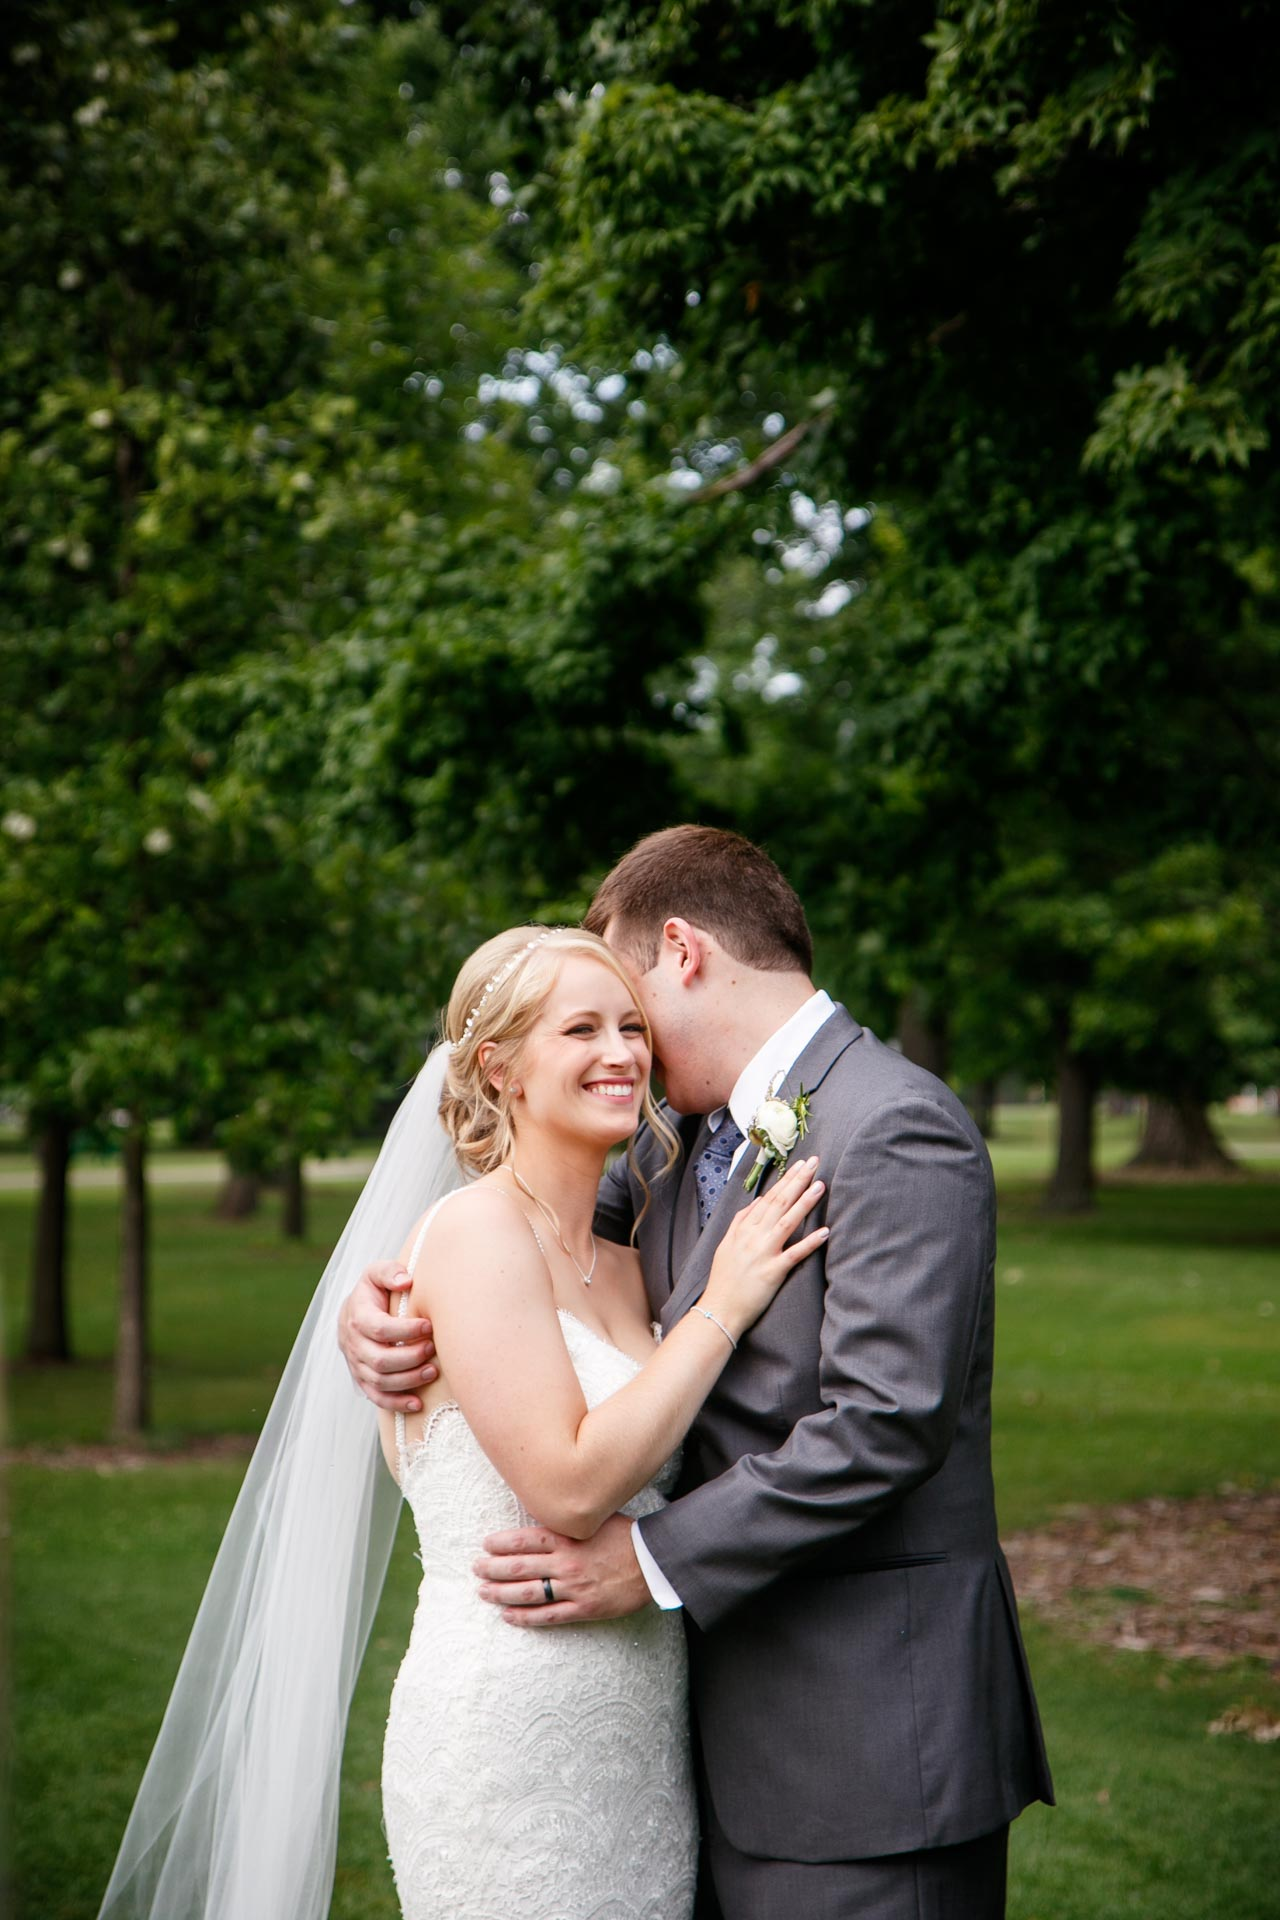 neenah-riverside-park-bride-groom-adam-shea-photography-green-bay-appleton-neenah-photographer-13.jpg